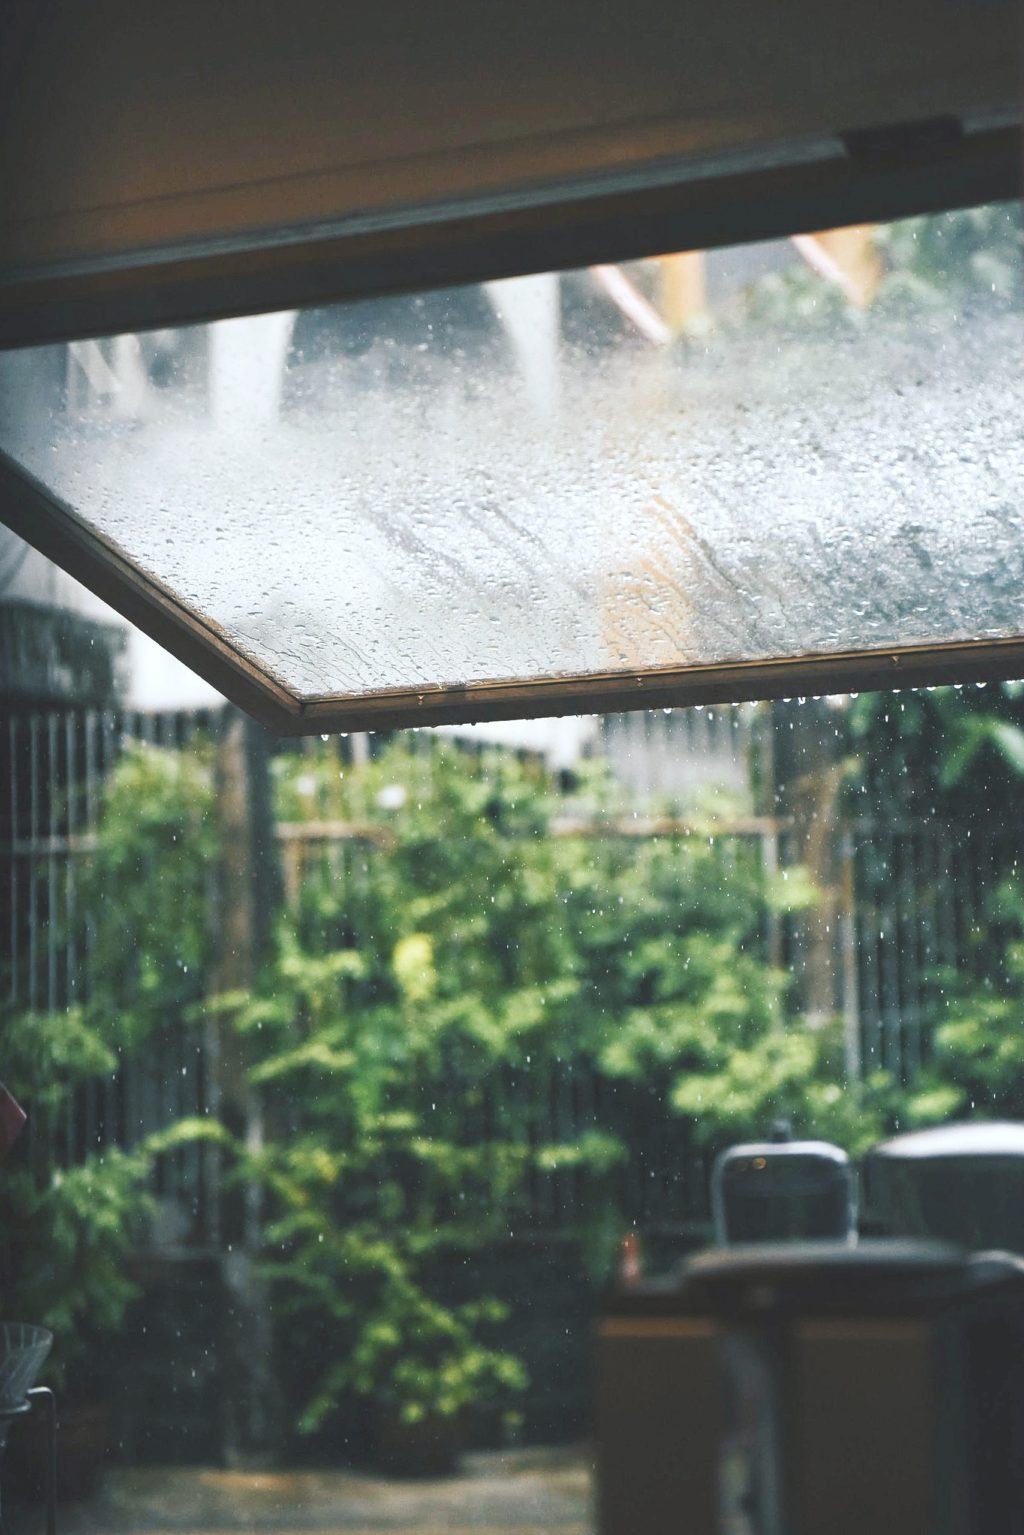 A backyard porch shows rain falling and makes you think of ways to prepare for storm season.